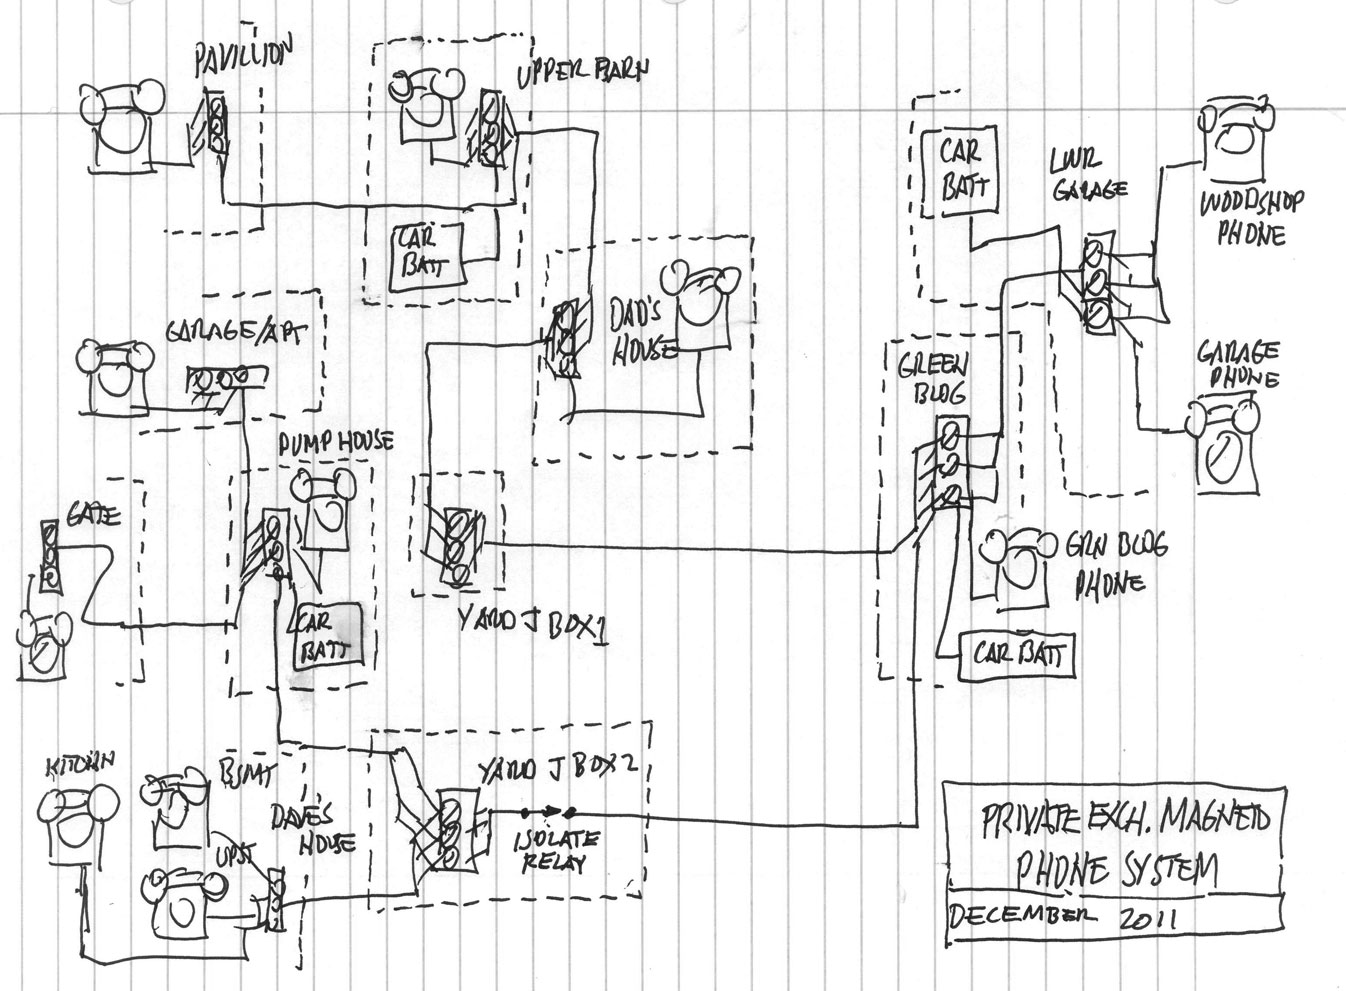 Telephone Intercom Wiring Diagram Trusted Diagrams Standard Addition Old For Phone On Circuit